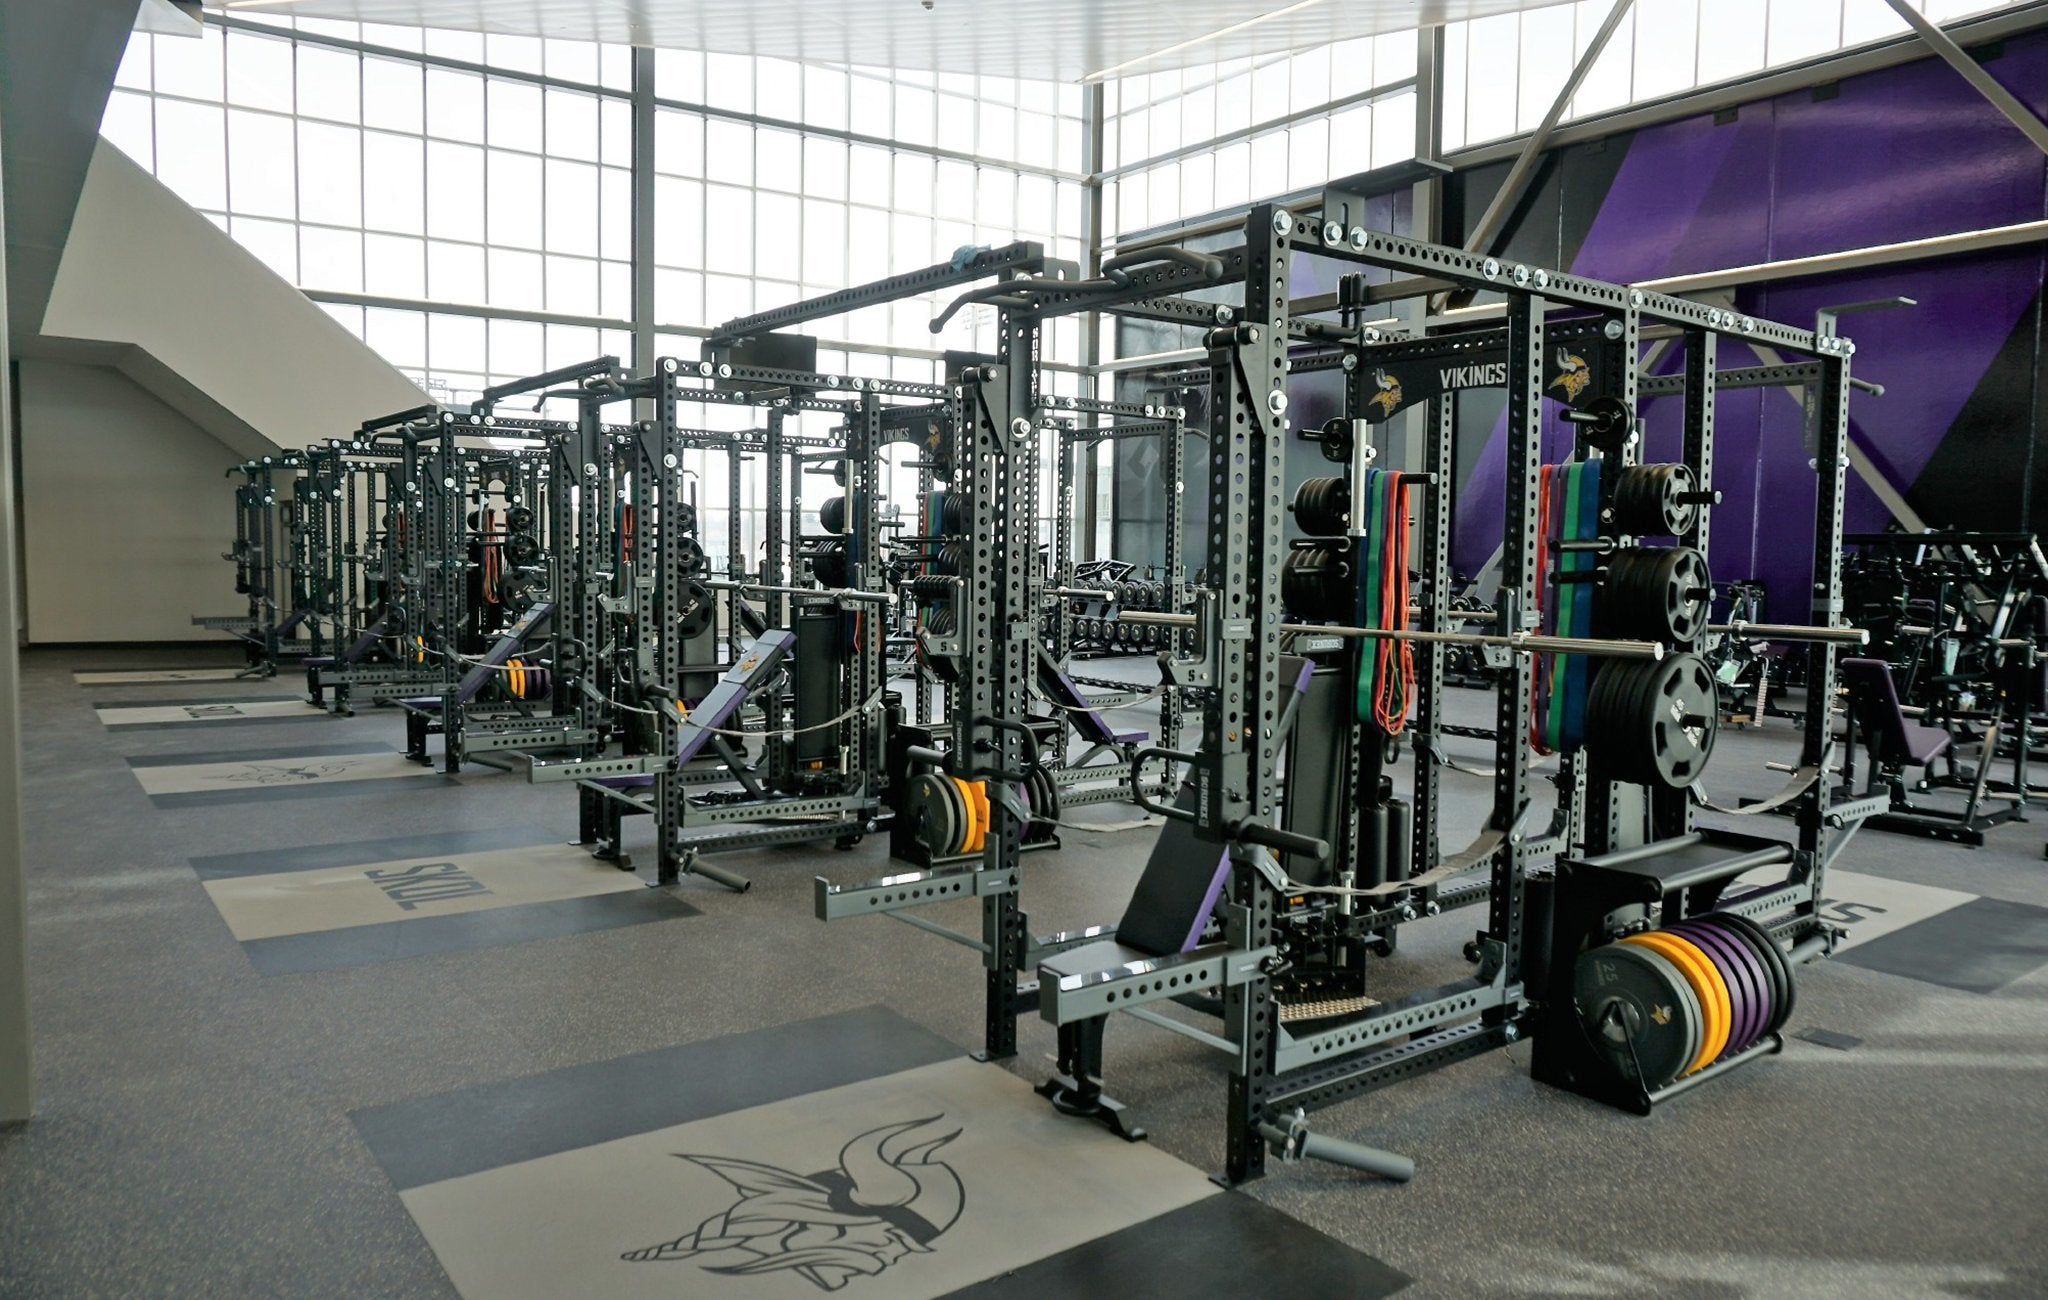 Minnesota Vikings Base Camp Double Full Racks